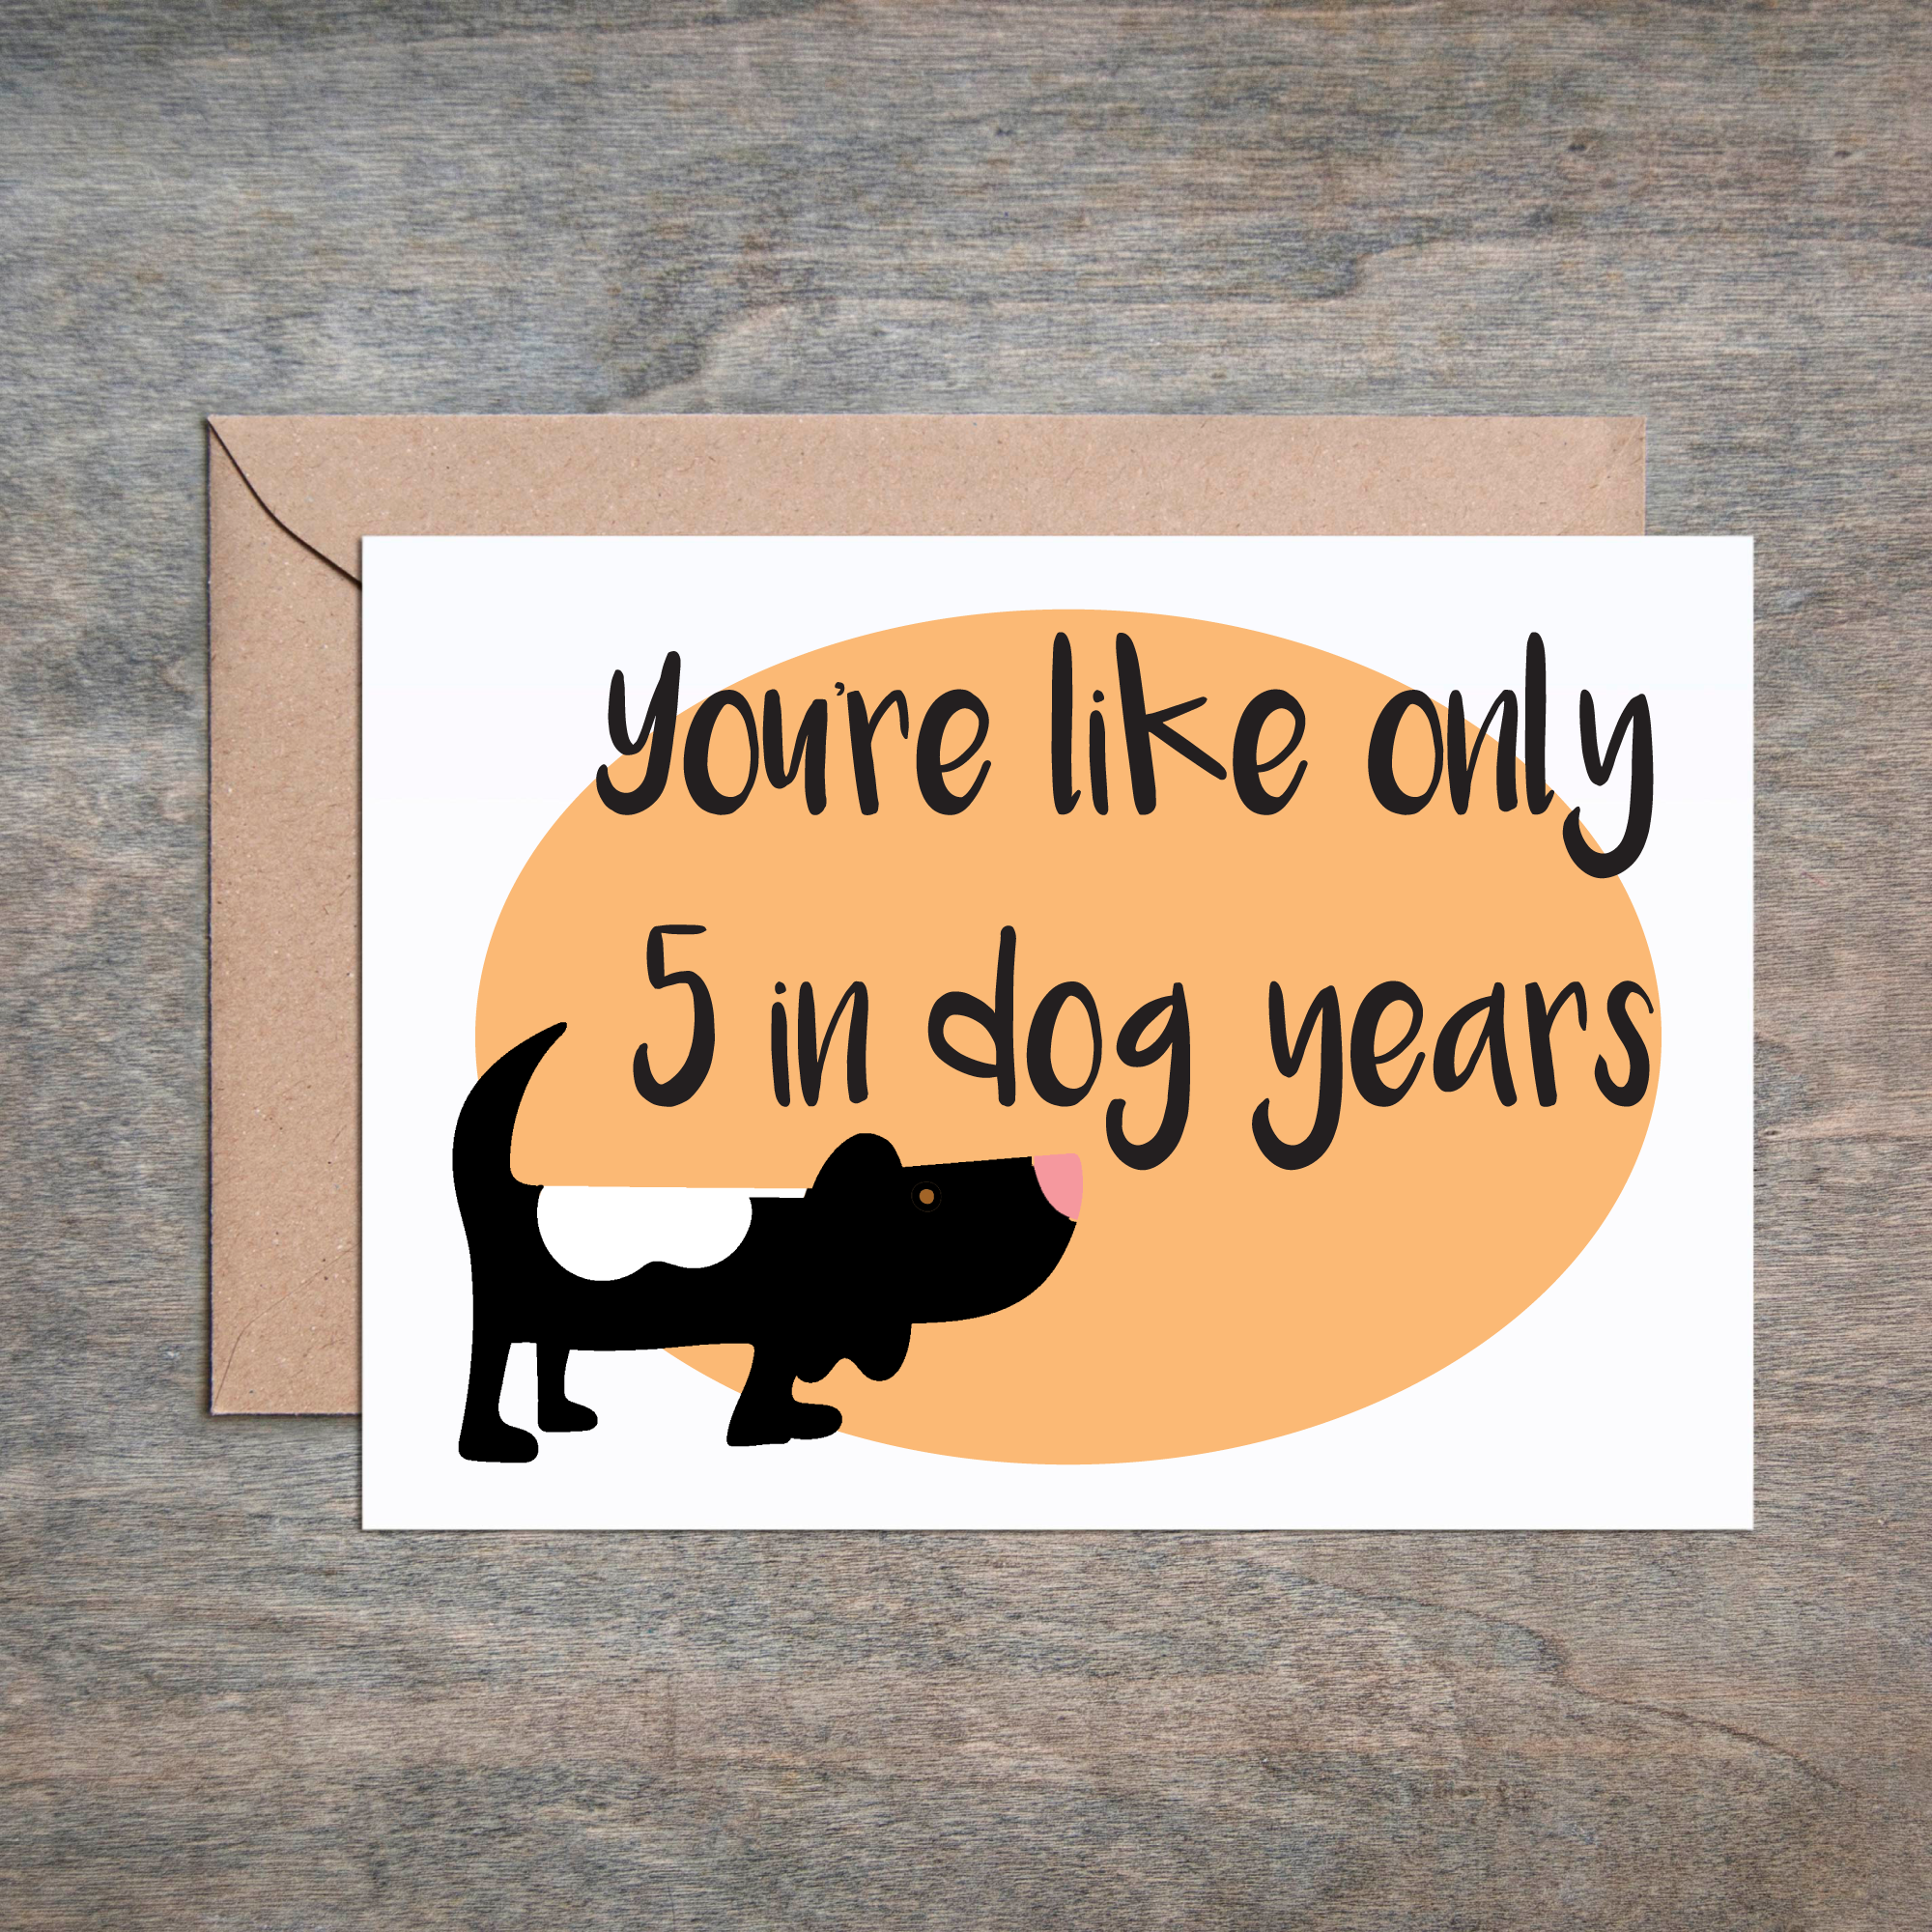 Funny Birthday Card Cardfriend Best Friend Happy Sister Adult Dog Years